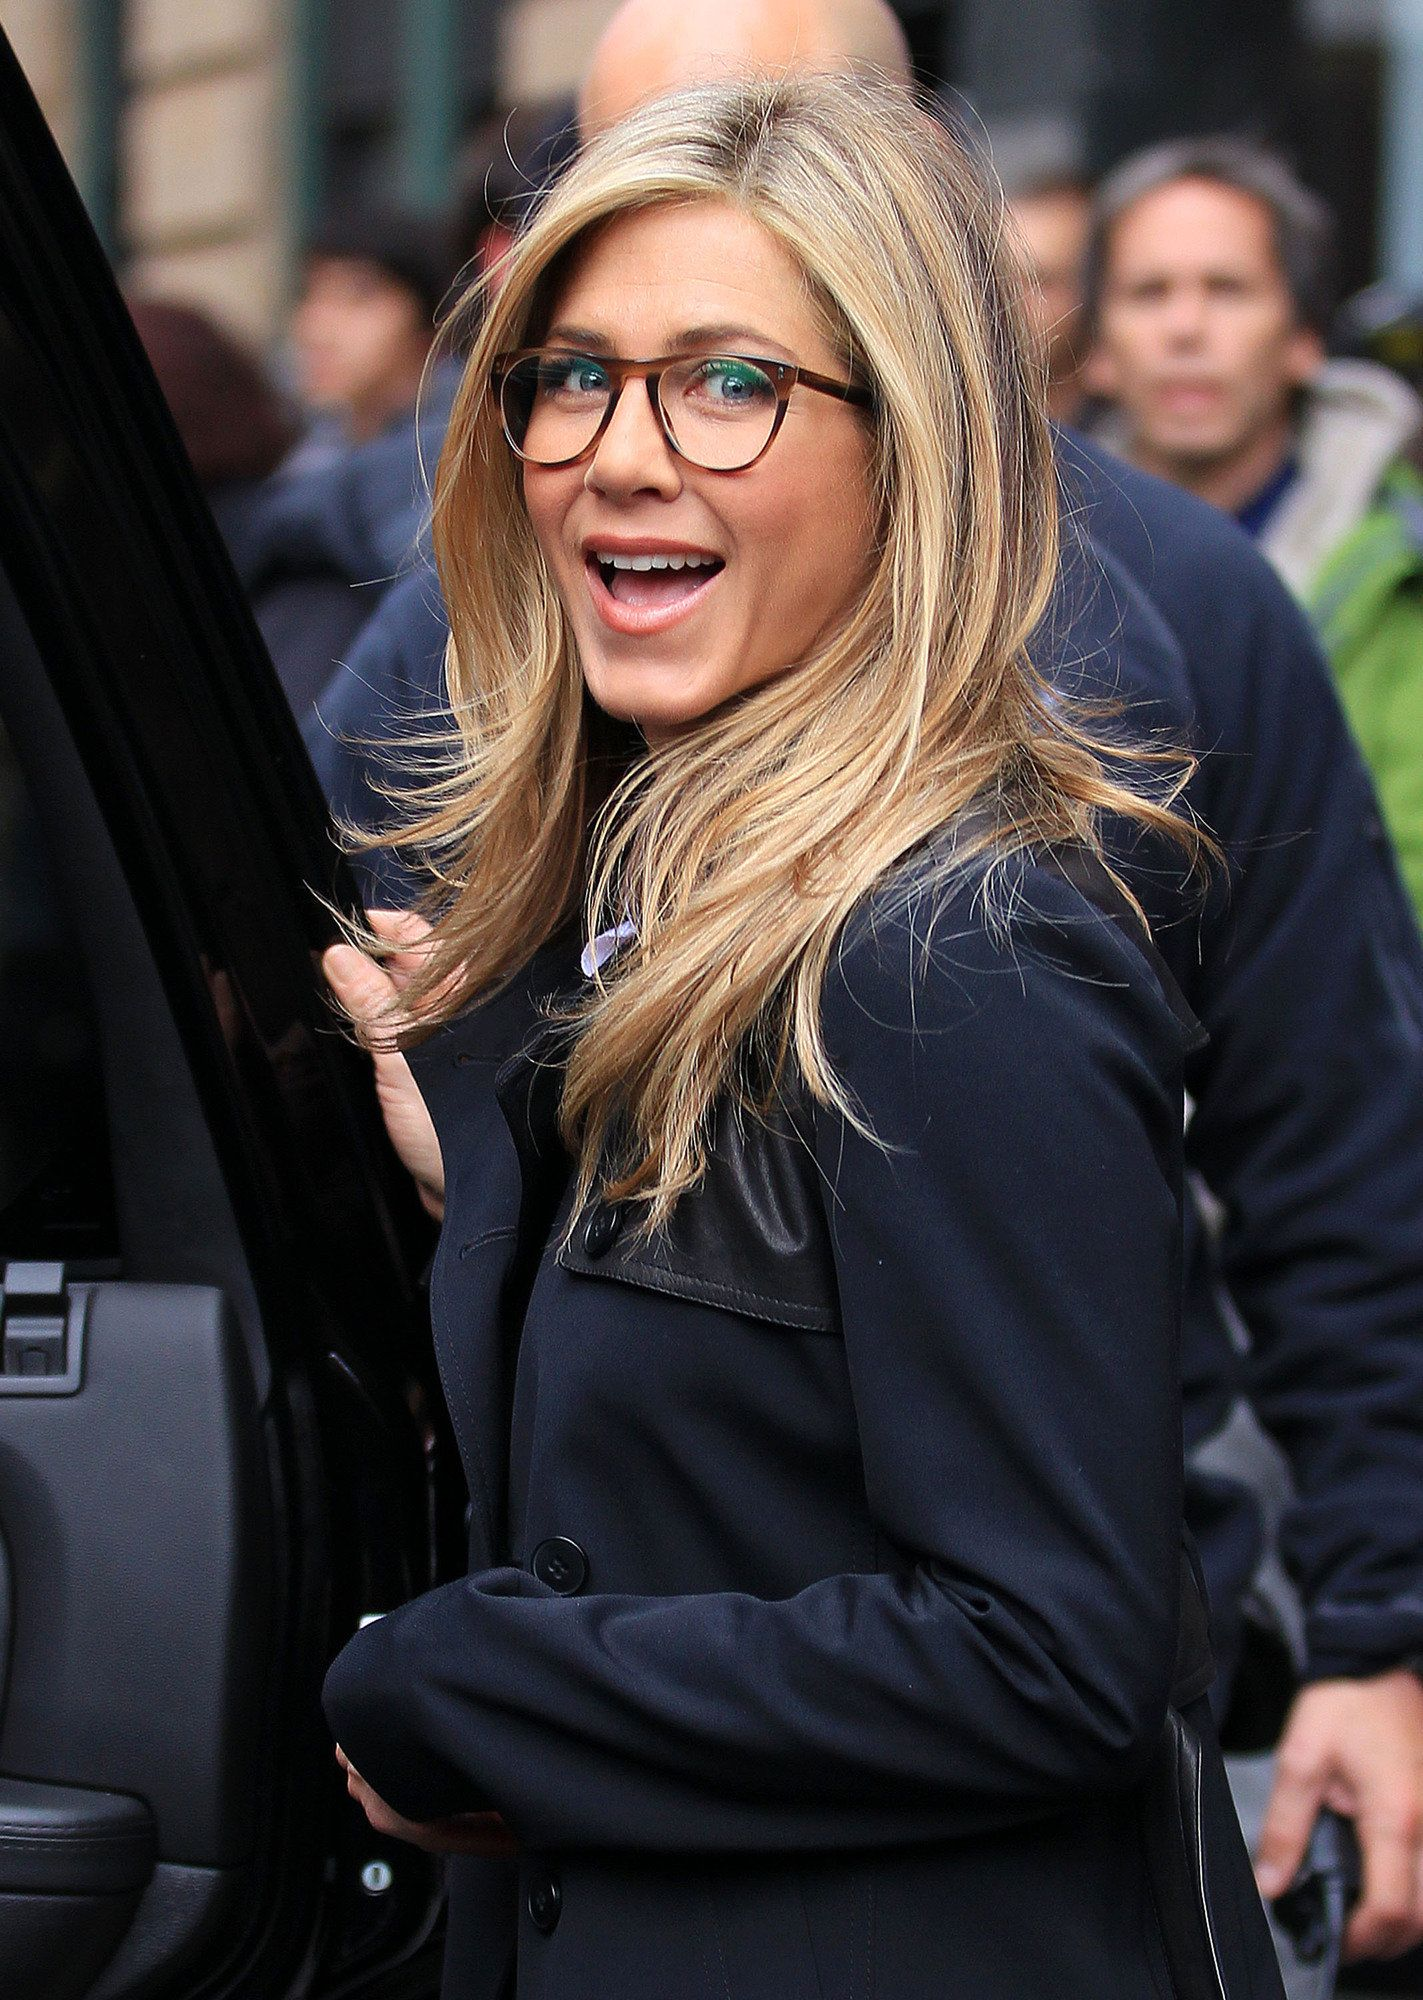 Jennifer Aniston These Large Glasses Look Fab On Jennifer Aniston The Not So Thick Frames Compliment H Jennifer Aniston Style Jennifer Aniston Jen Aniston